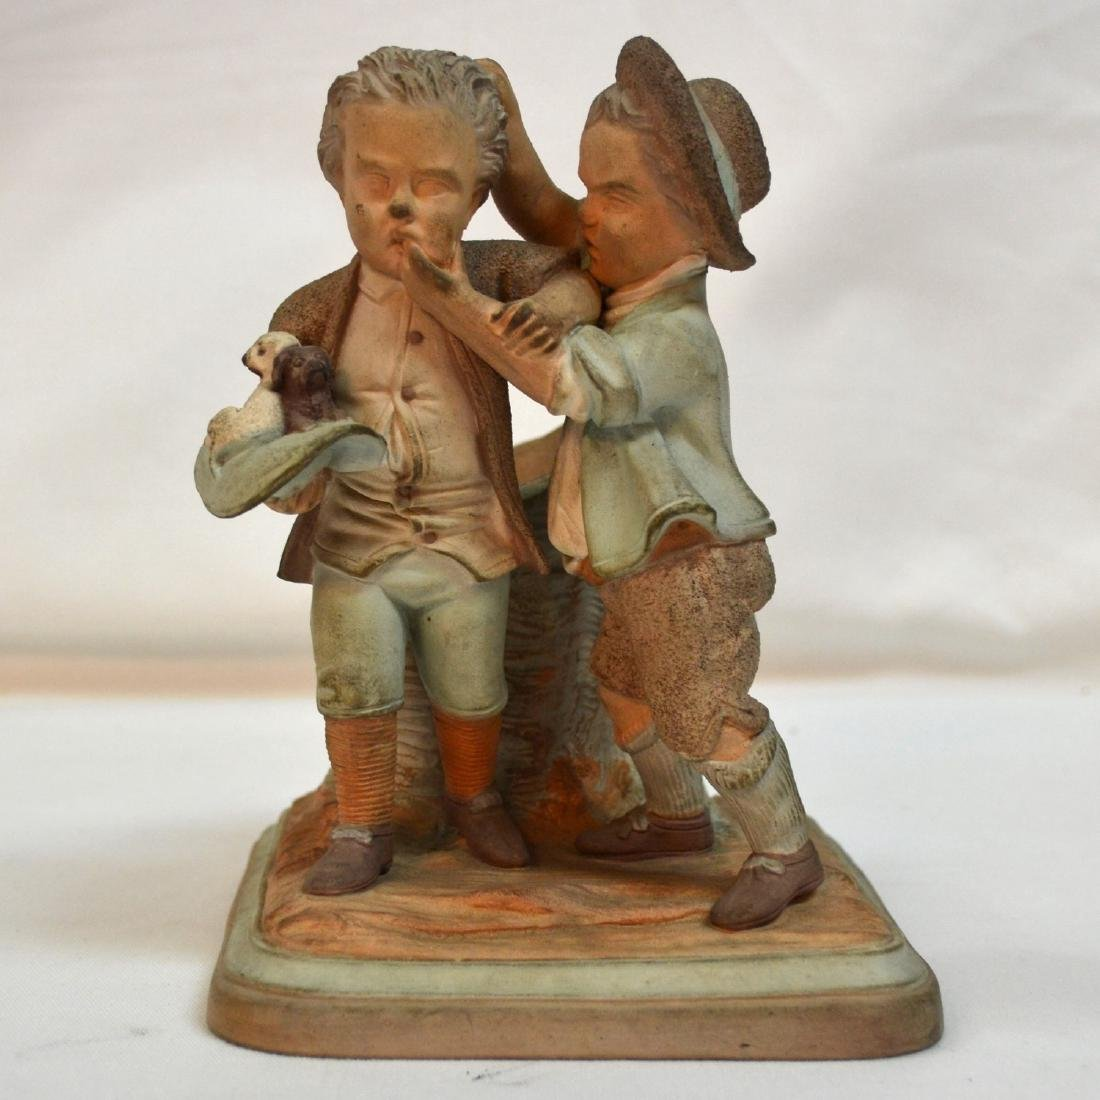 19thc English Terracotta Smoking Stand Two Boys w